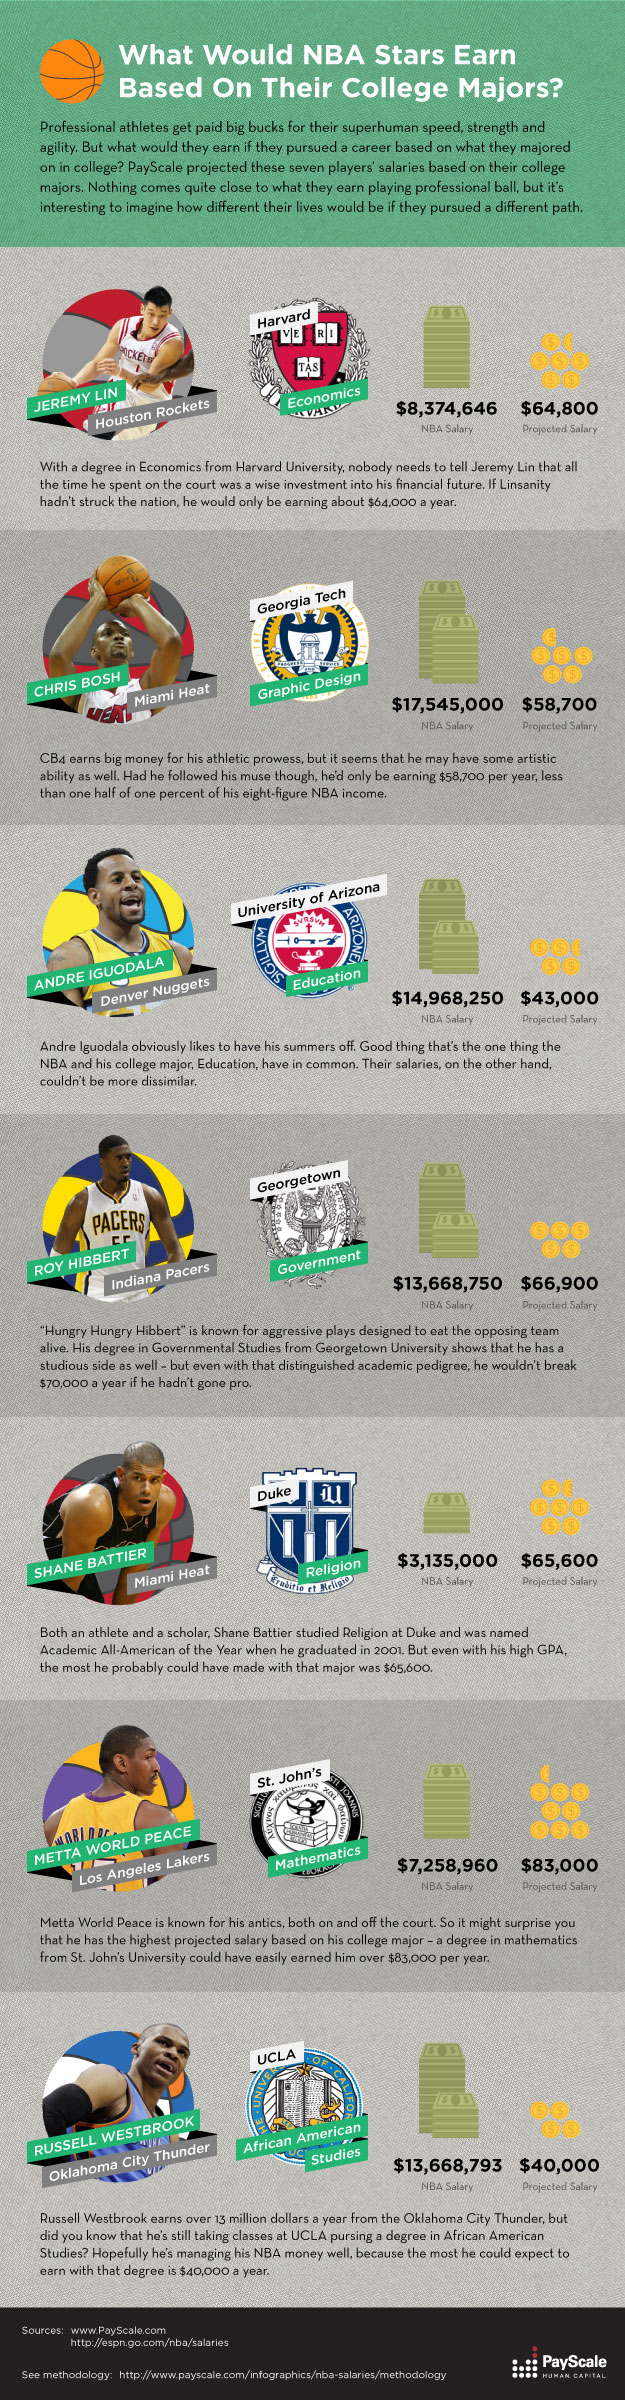 NBA Star Earnings